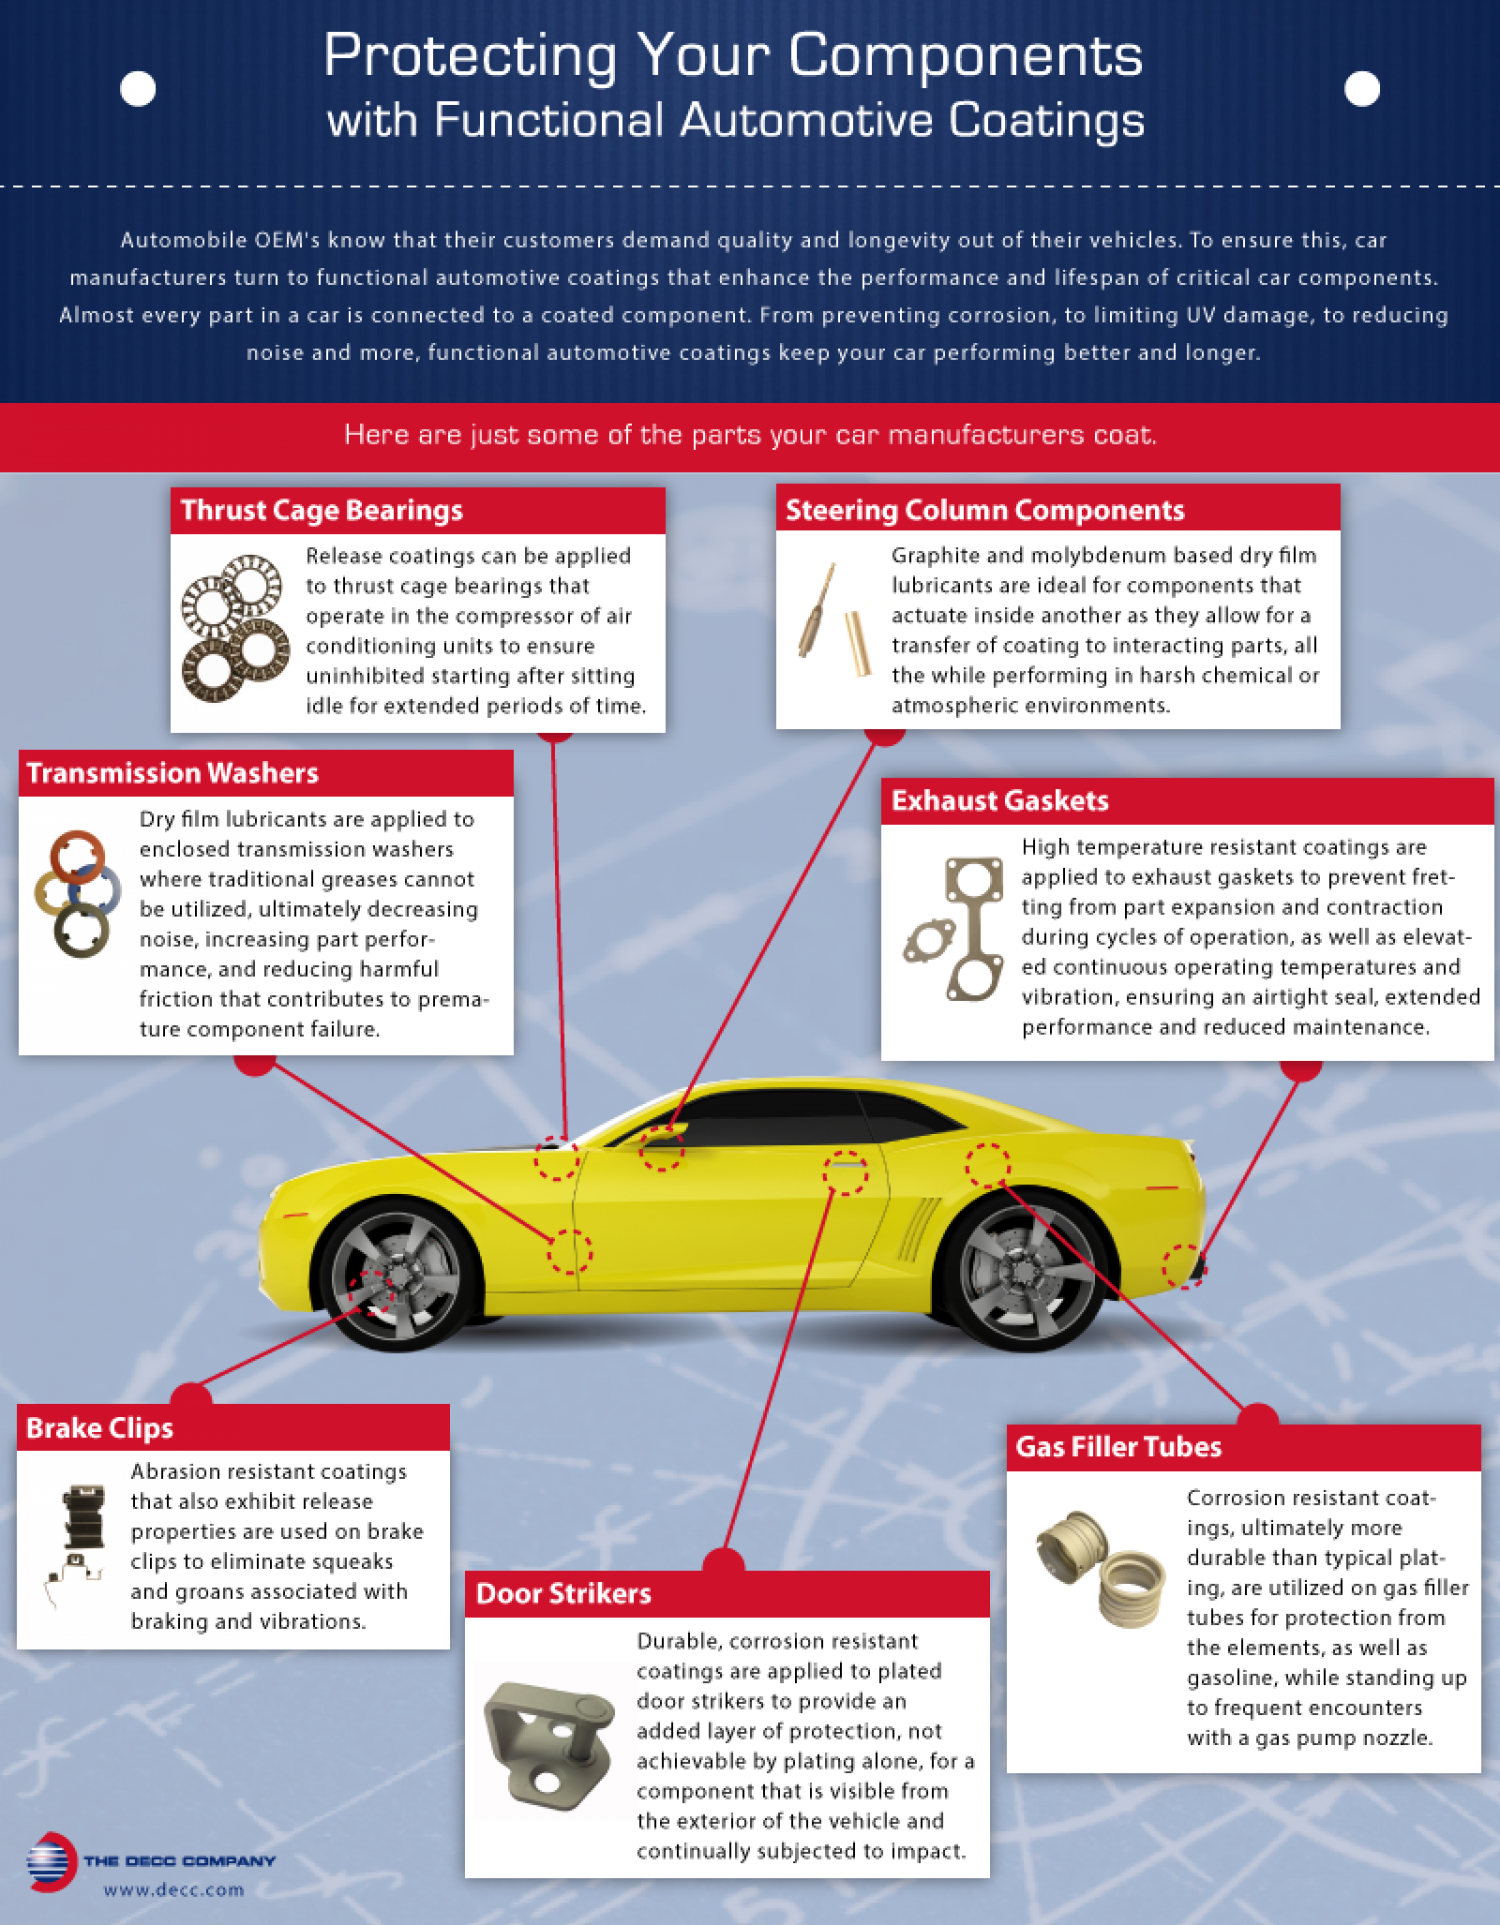 Protecting Your Components with Functional Automotive Coatings Infographic